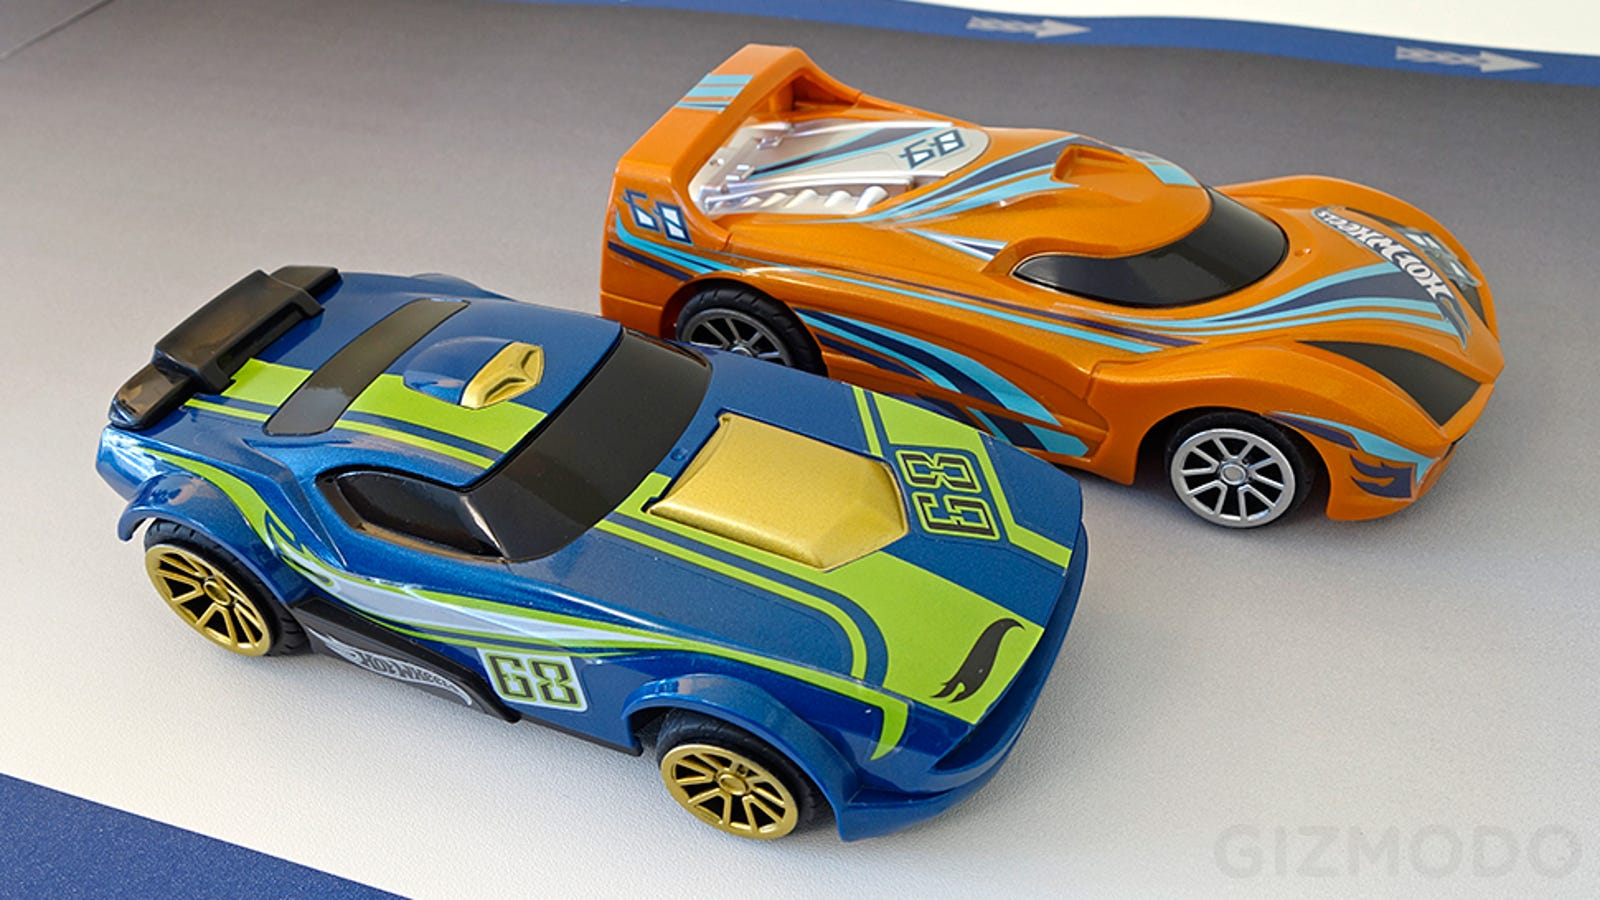 hot wheels 39 new rc cars have minds of their own. Black Bedroom Furniture Sets. Home Design Ideas